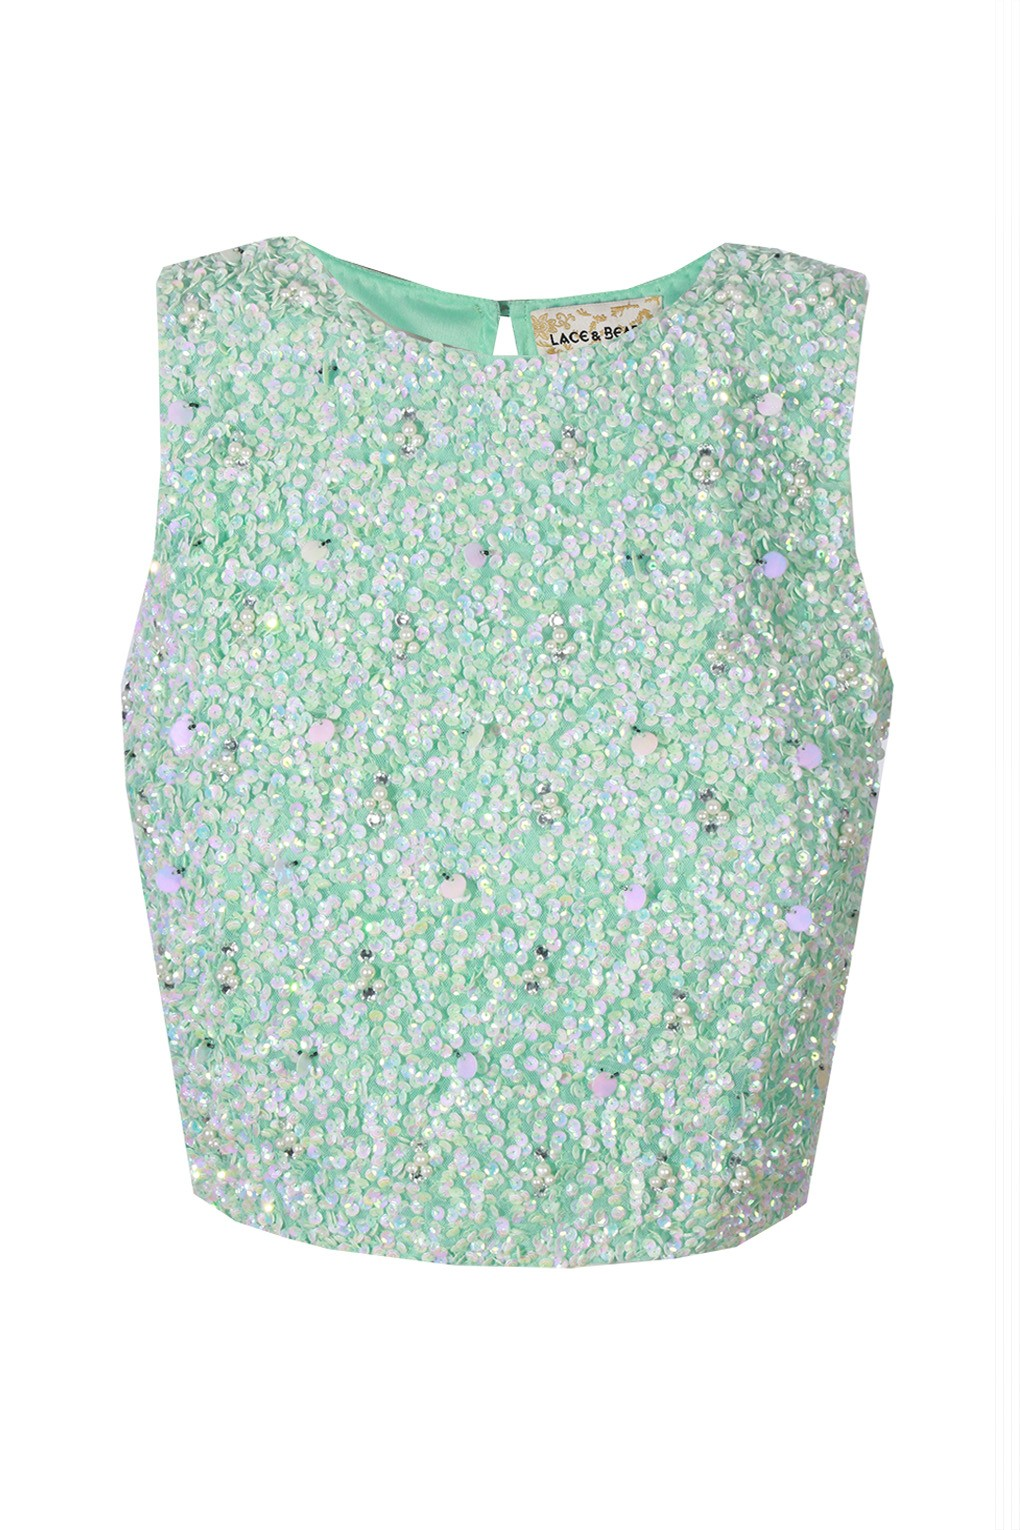 Lace Amp Beads Picasso Mint Sequin Top Lace Amp Beads Tops